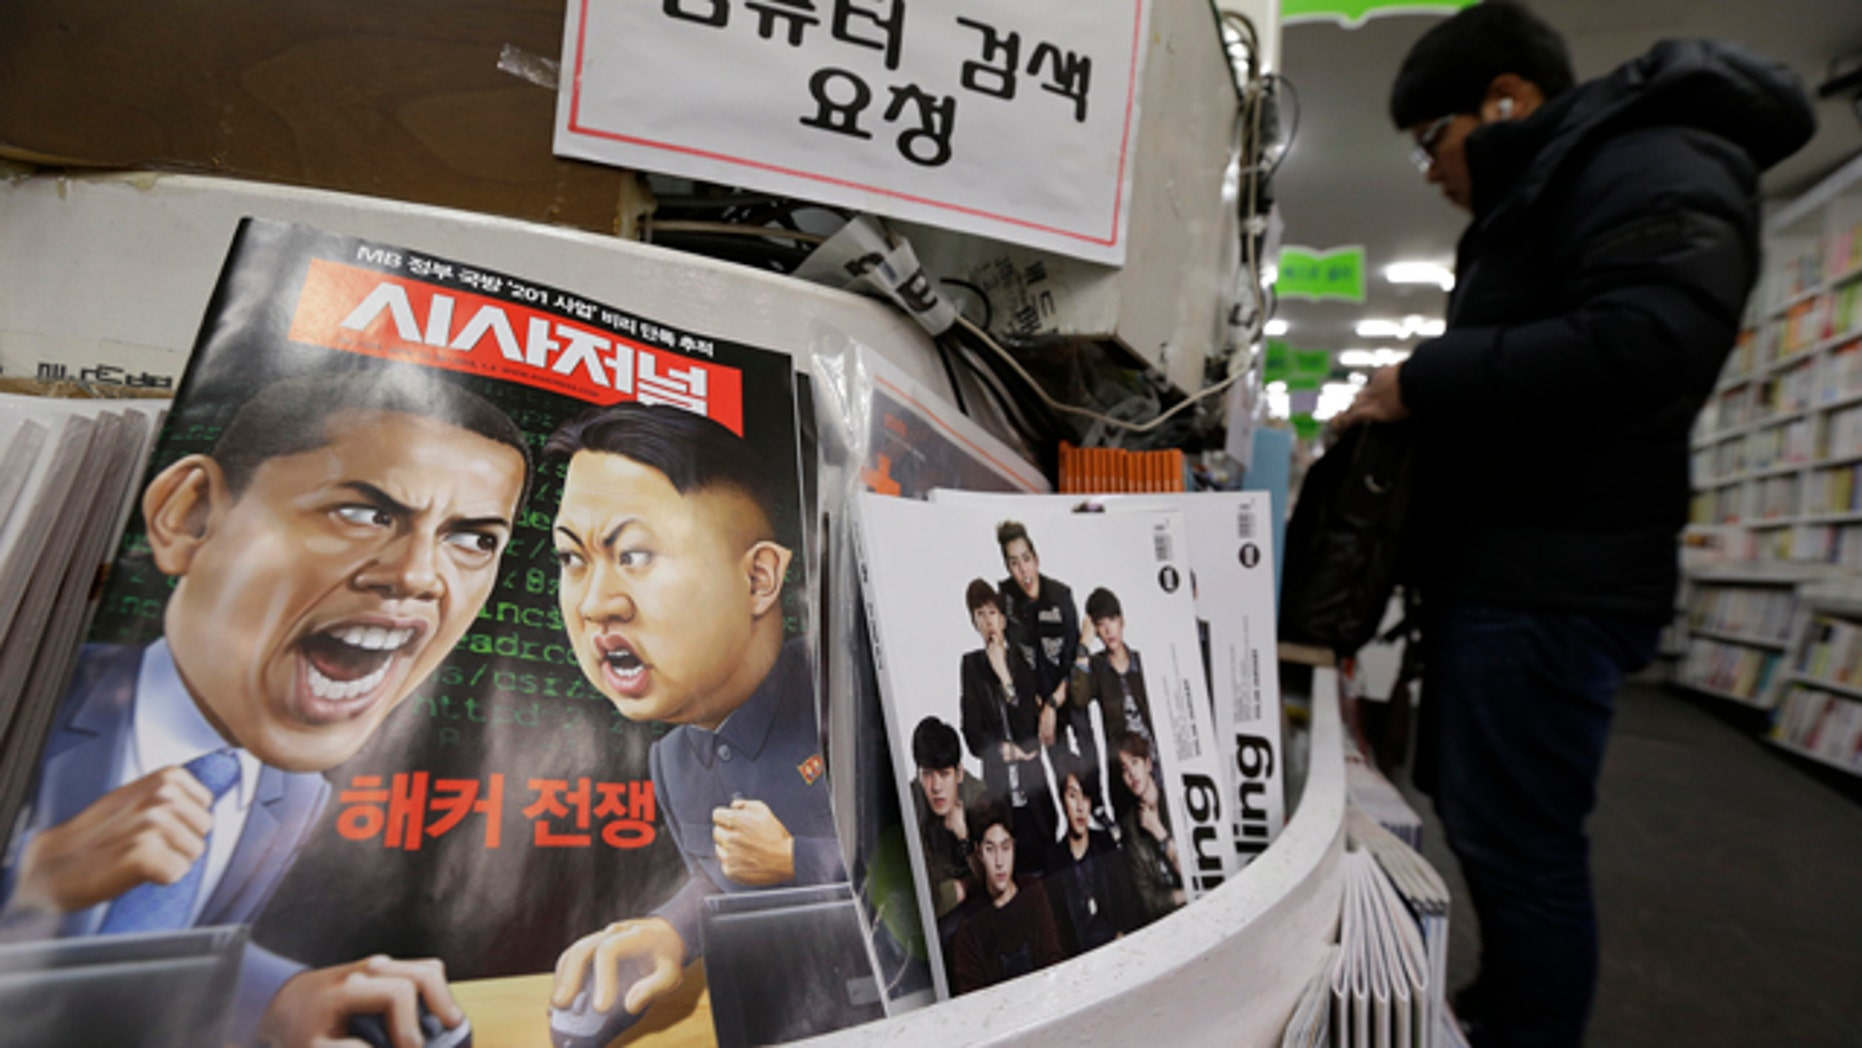 Jan. 3, 2015: A magazine with cartoons of U.S. President Barack Obama, left, and North Korean leader Kim Jong Un is displayed at a book store in Seoul.  (AP Photo/Ahn Young-joon)